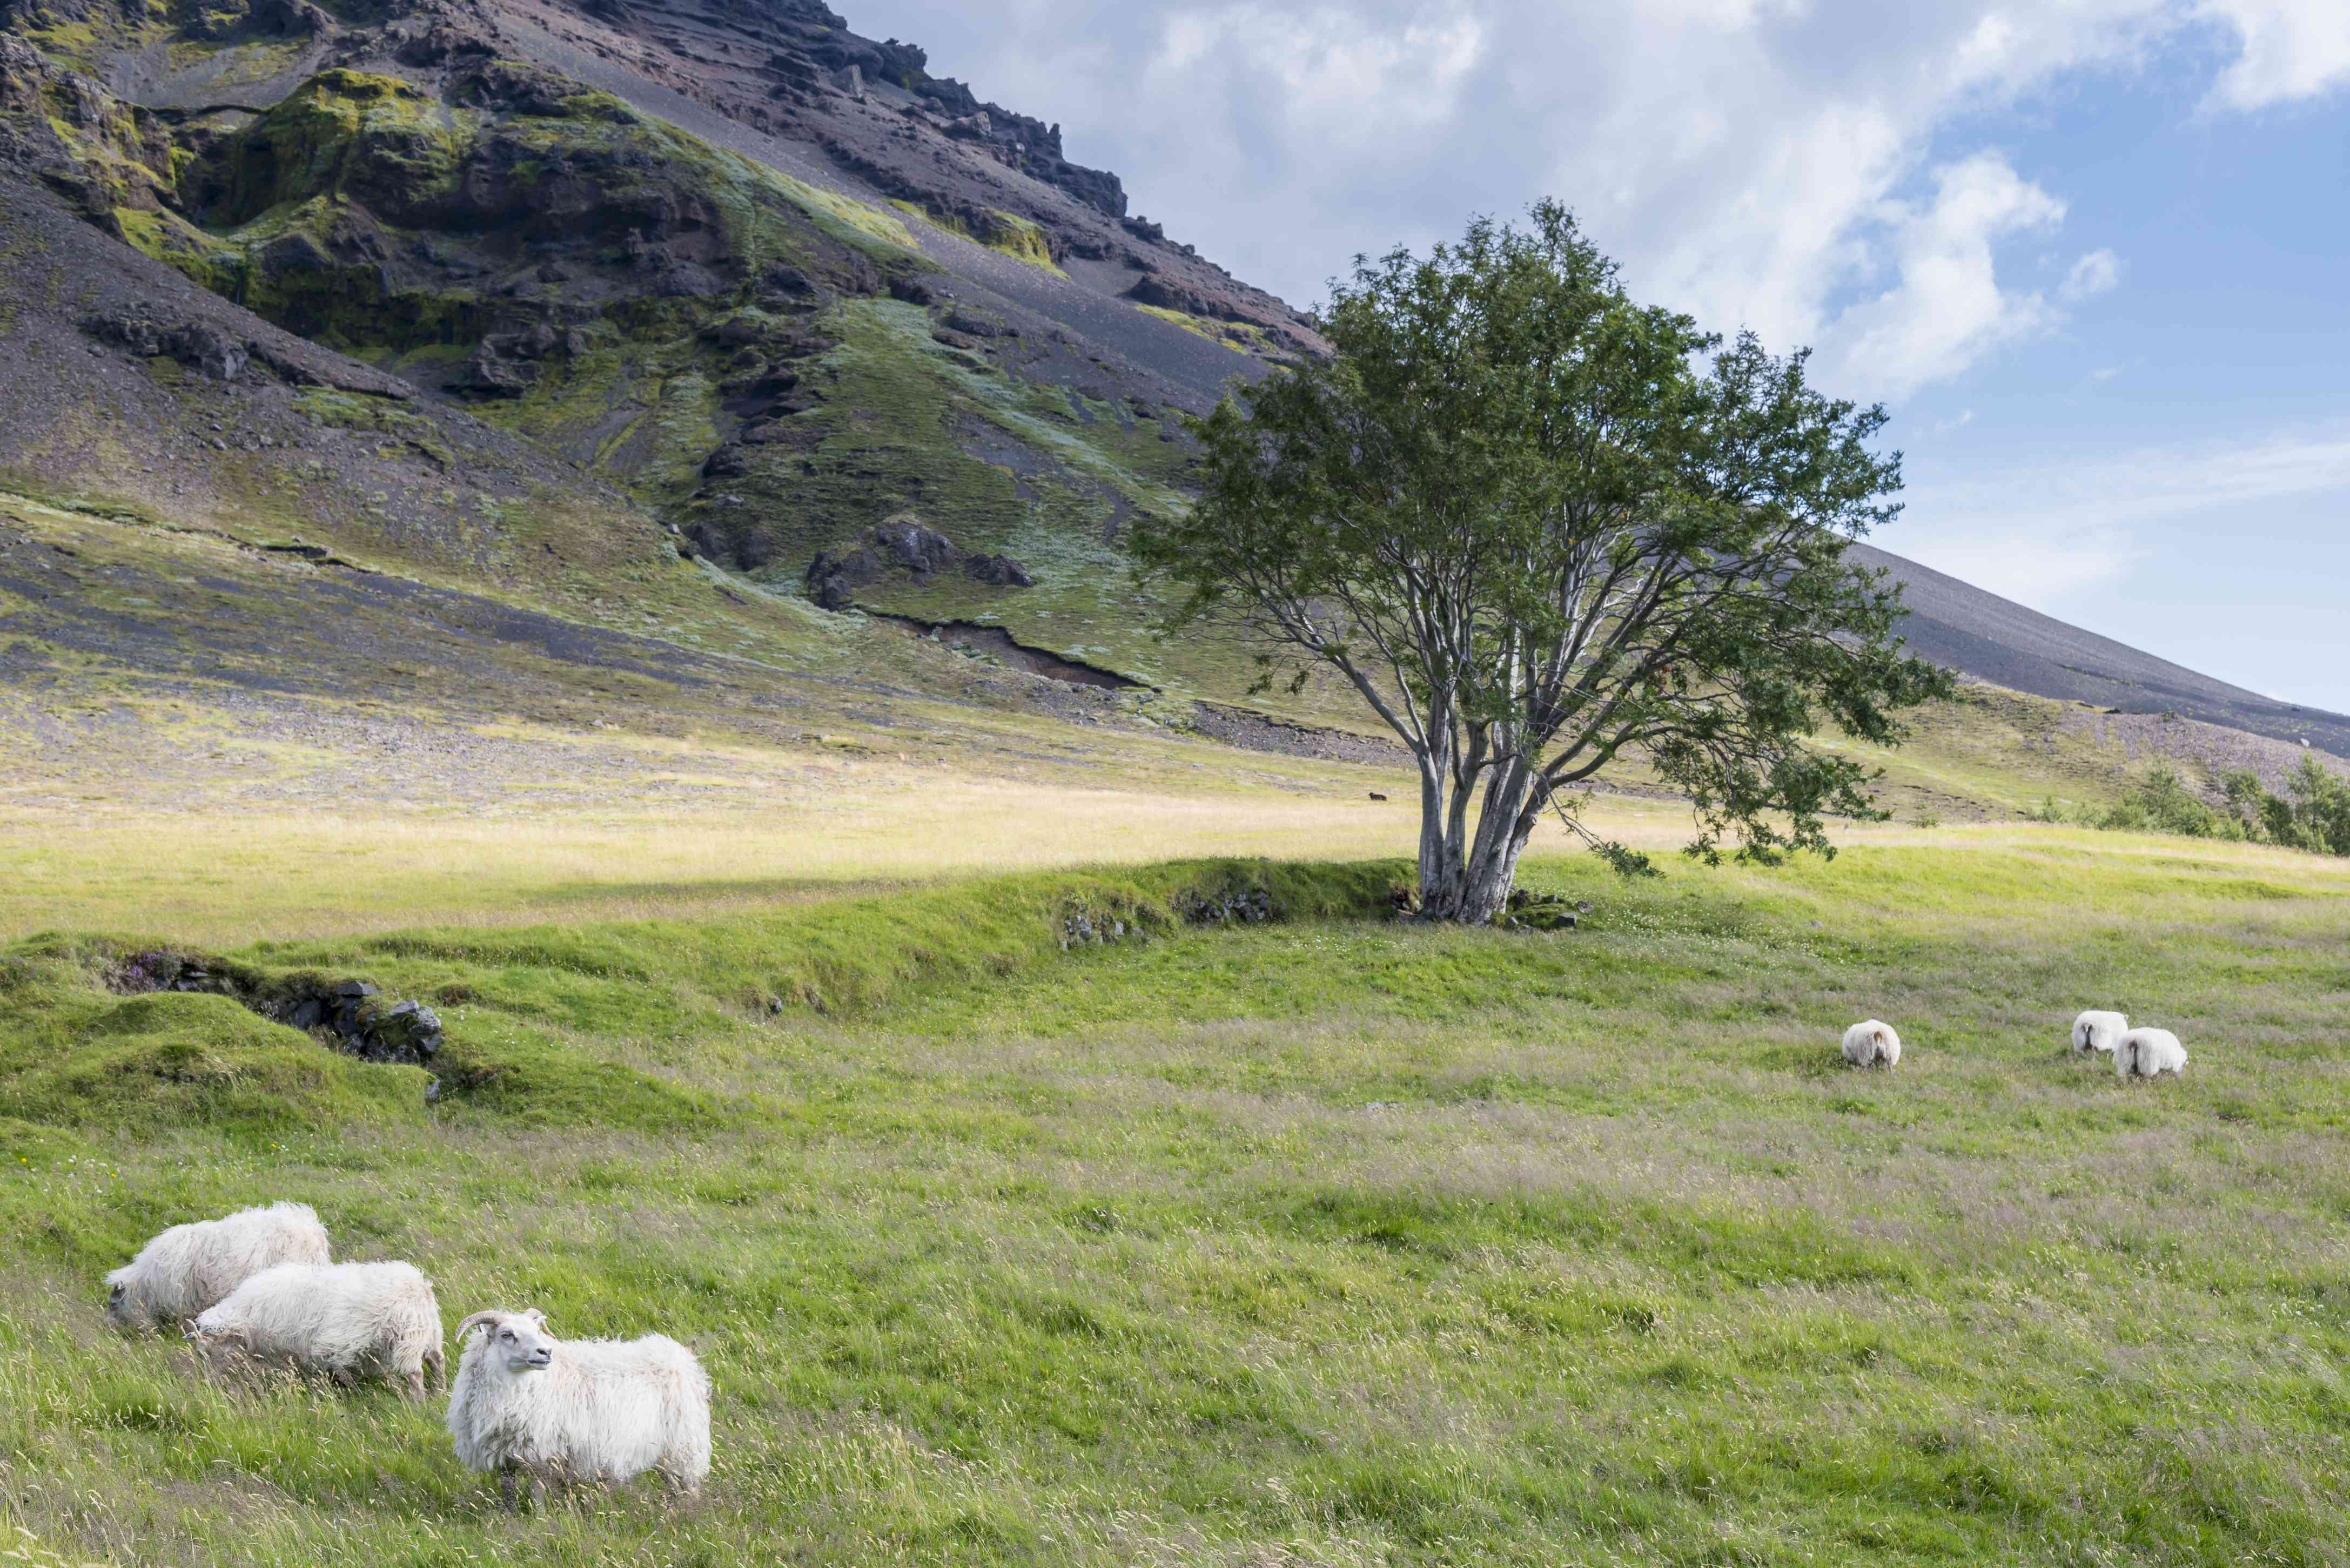 sheep grazing in southern Iceland